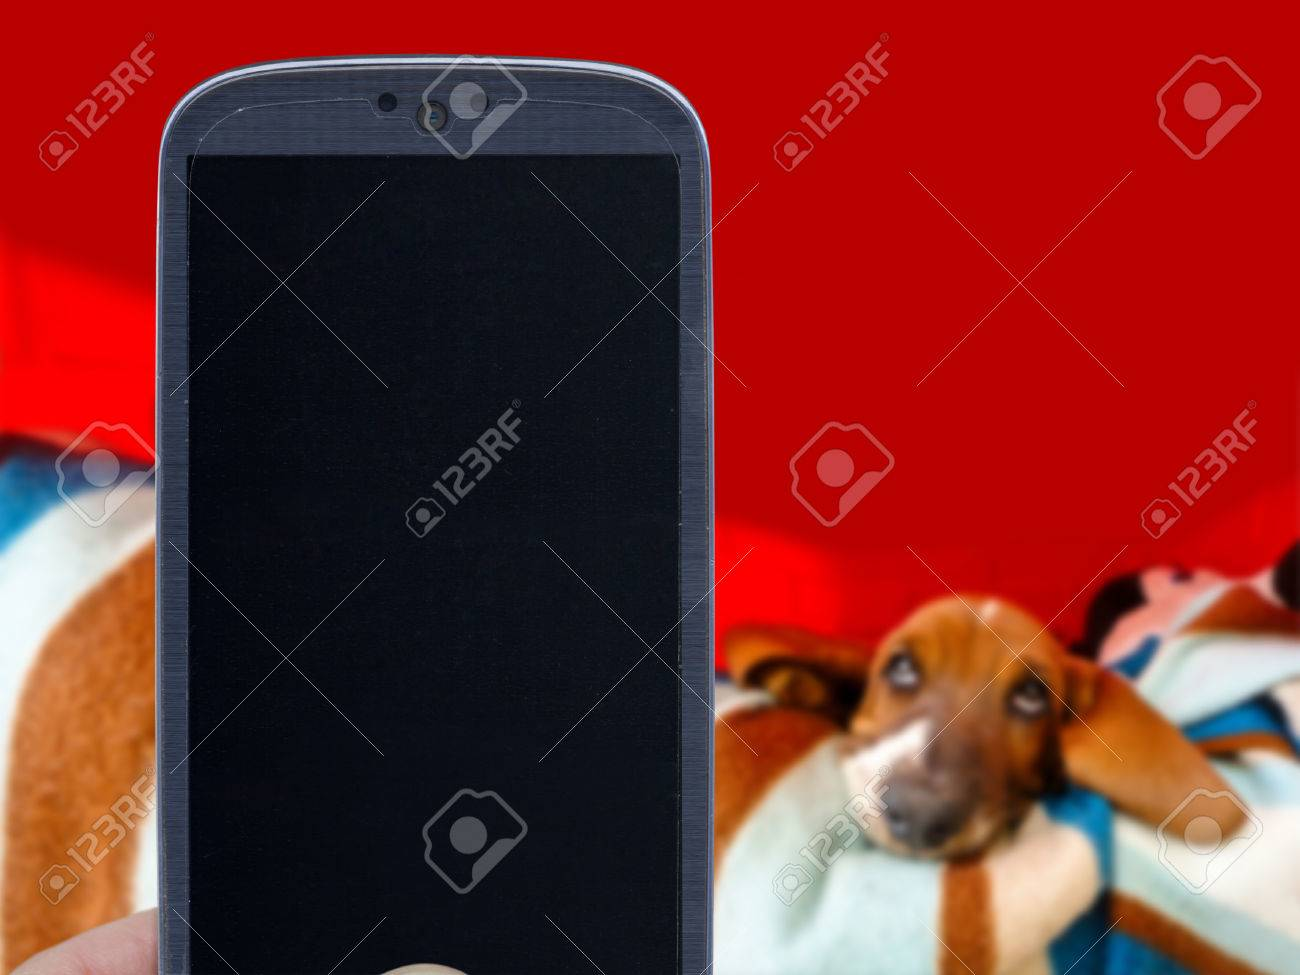 Smatrphone and basset hound on blurred background  Idea for pet